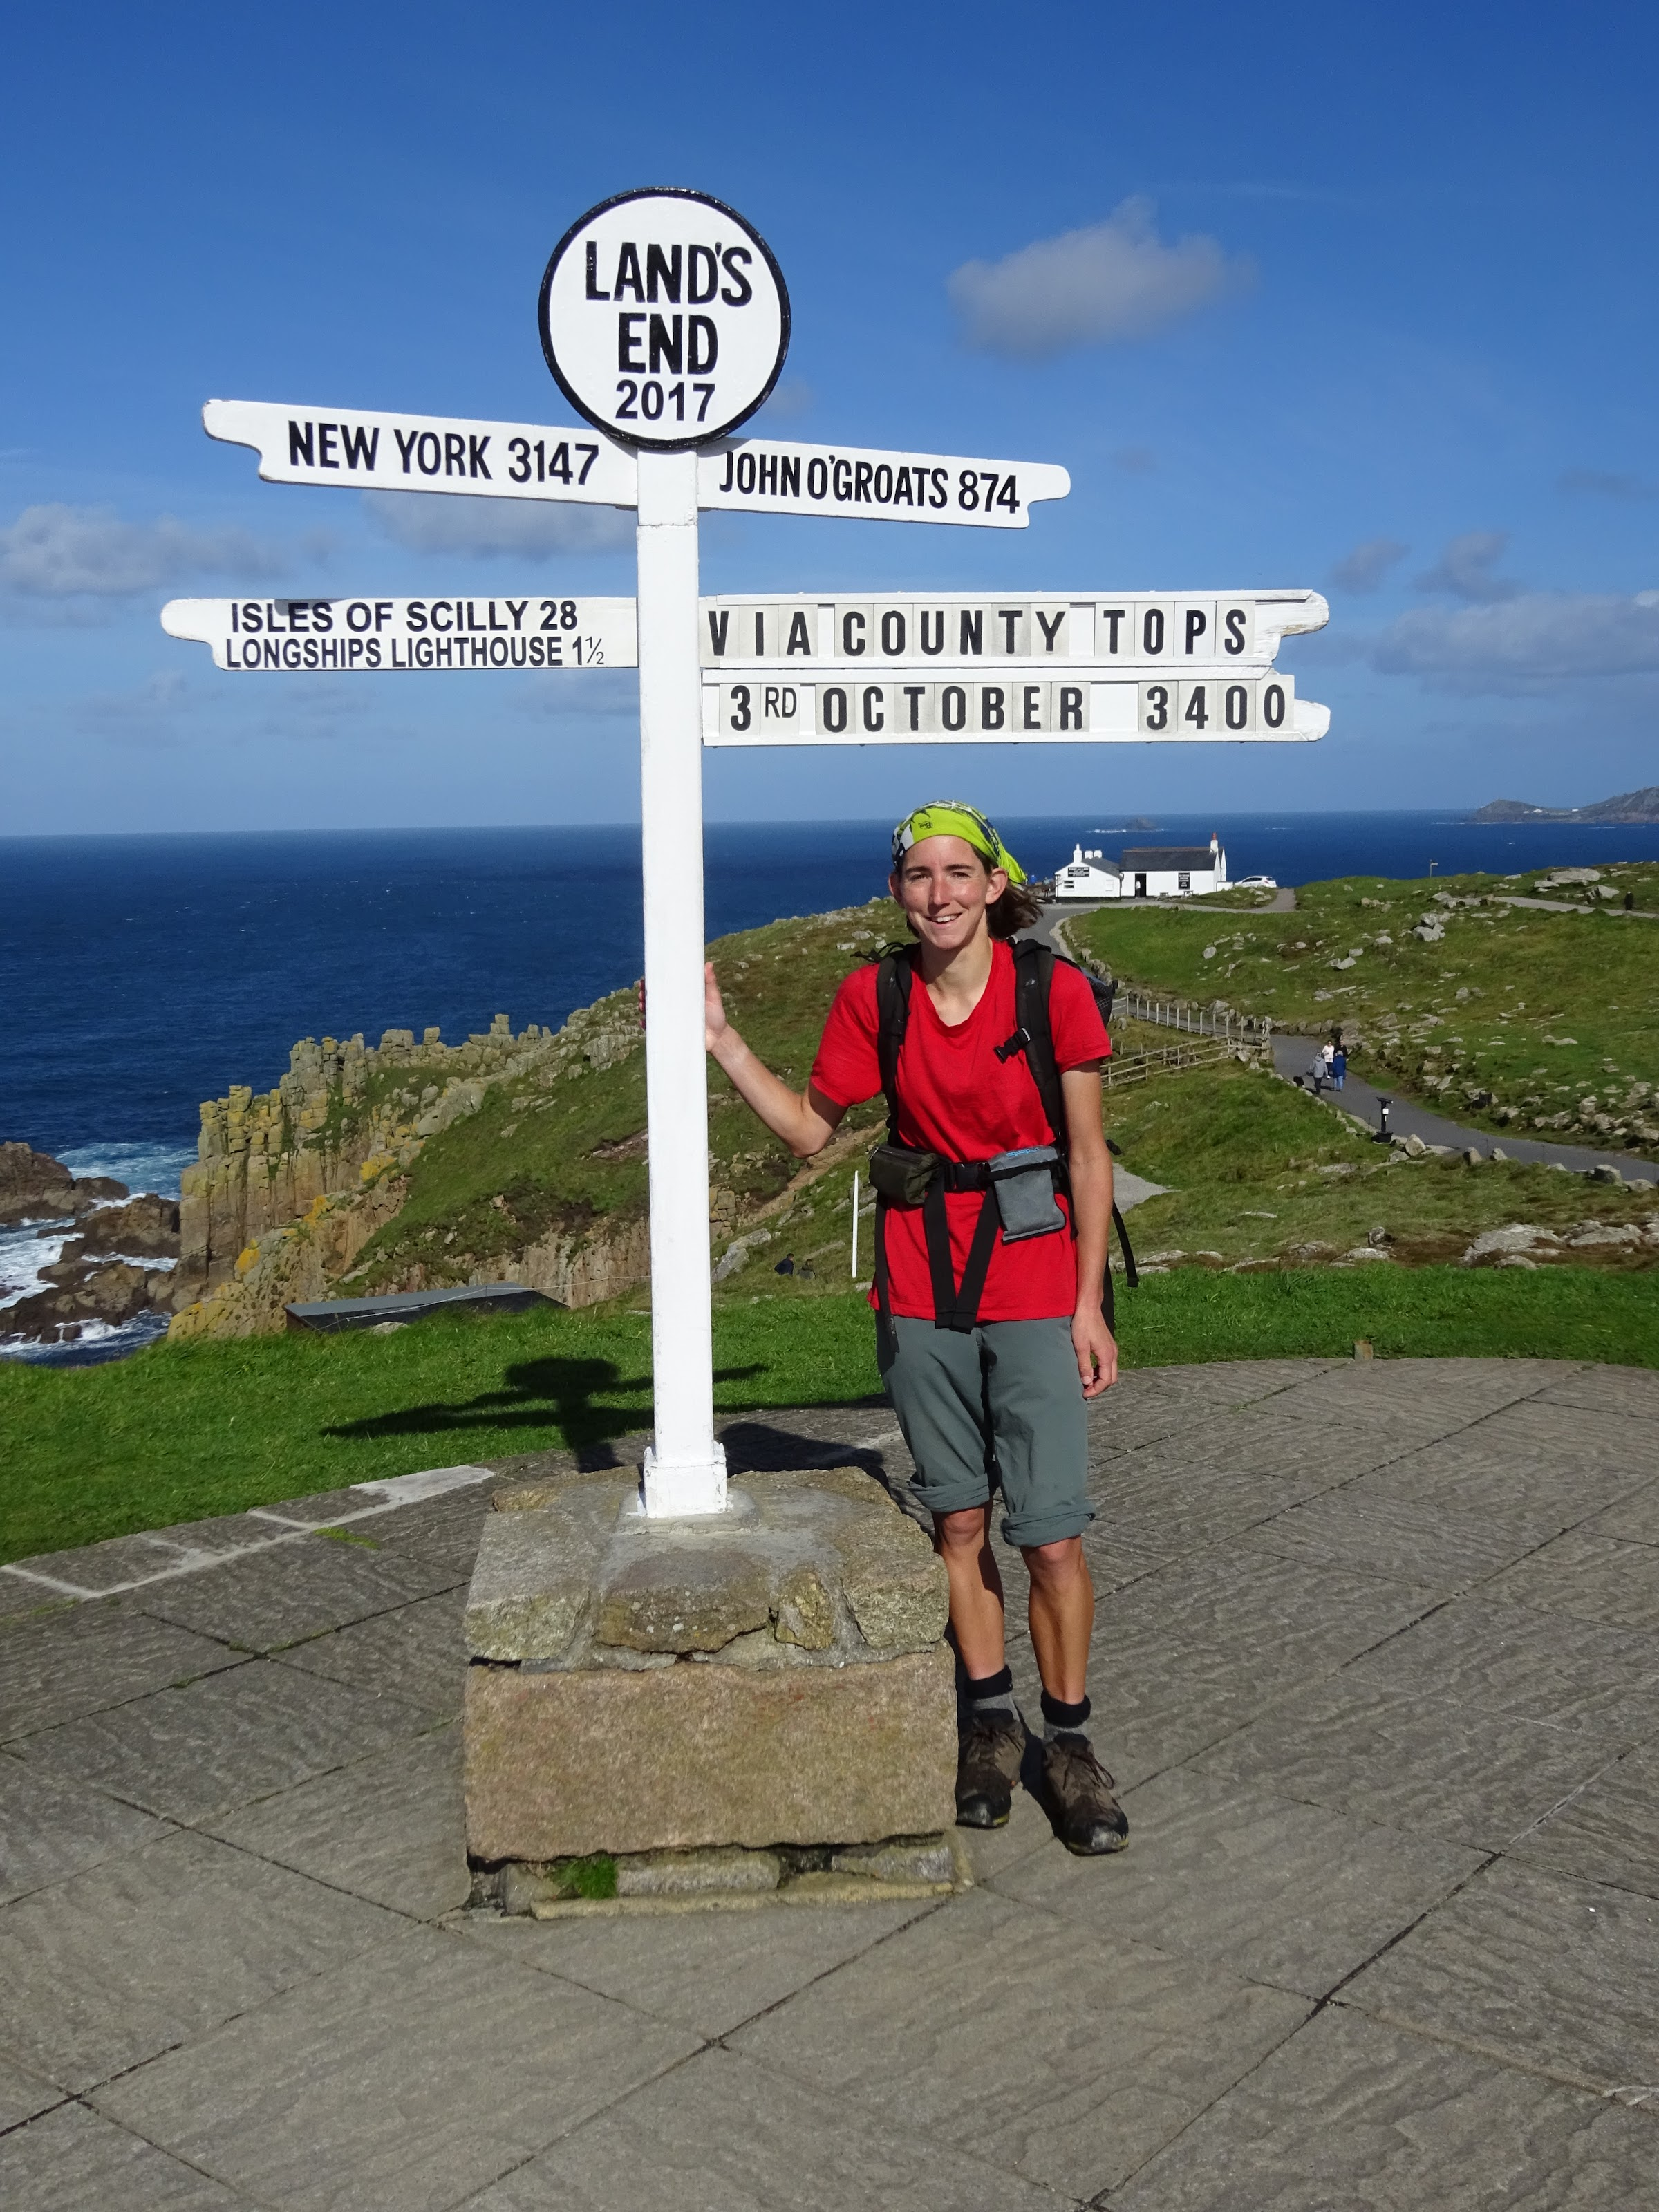 Completing my walk at Land's End